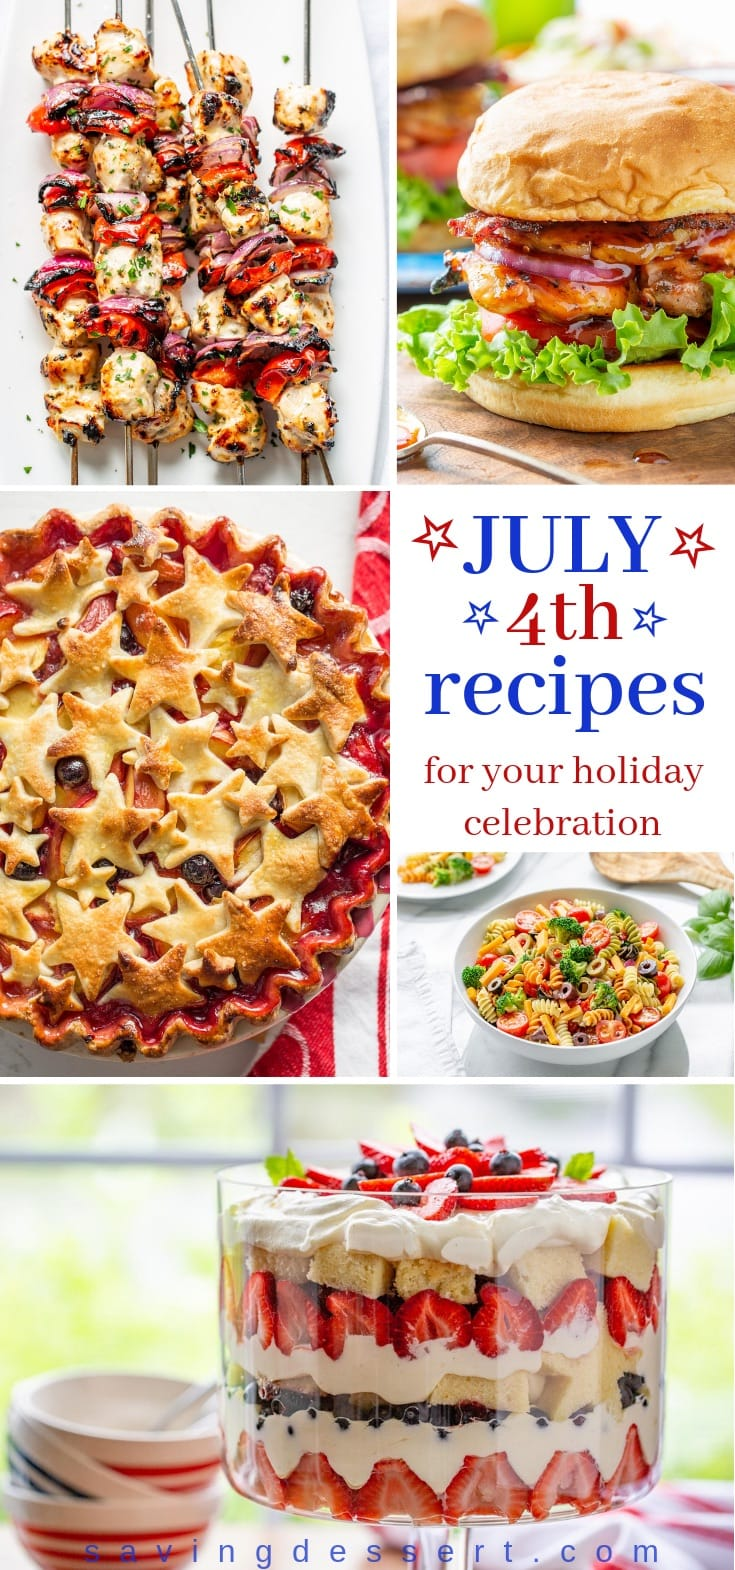 A roundup of photos and recipes perfect for the 4th of July